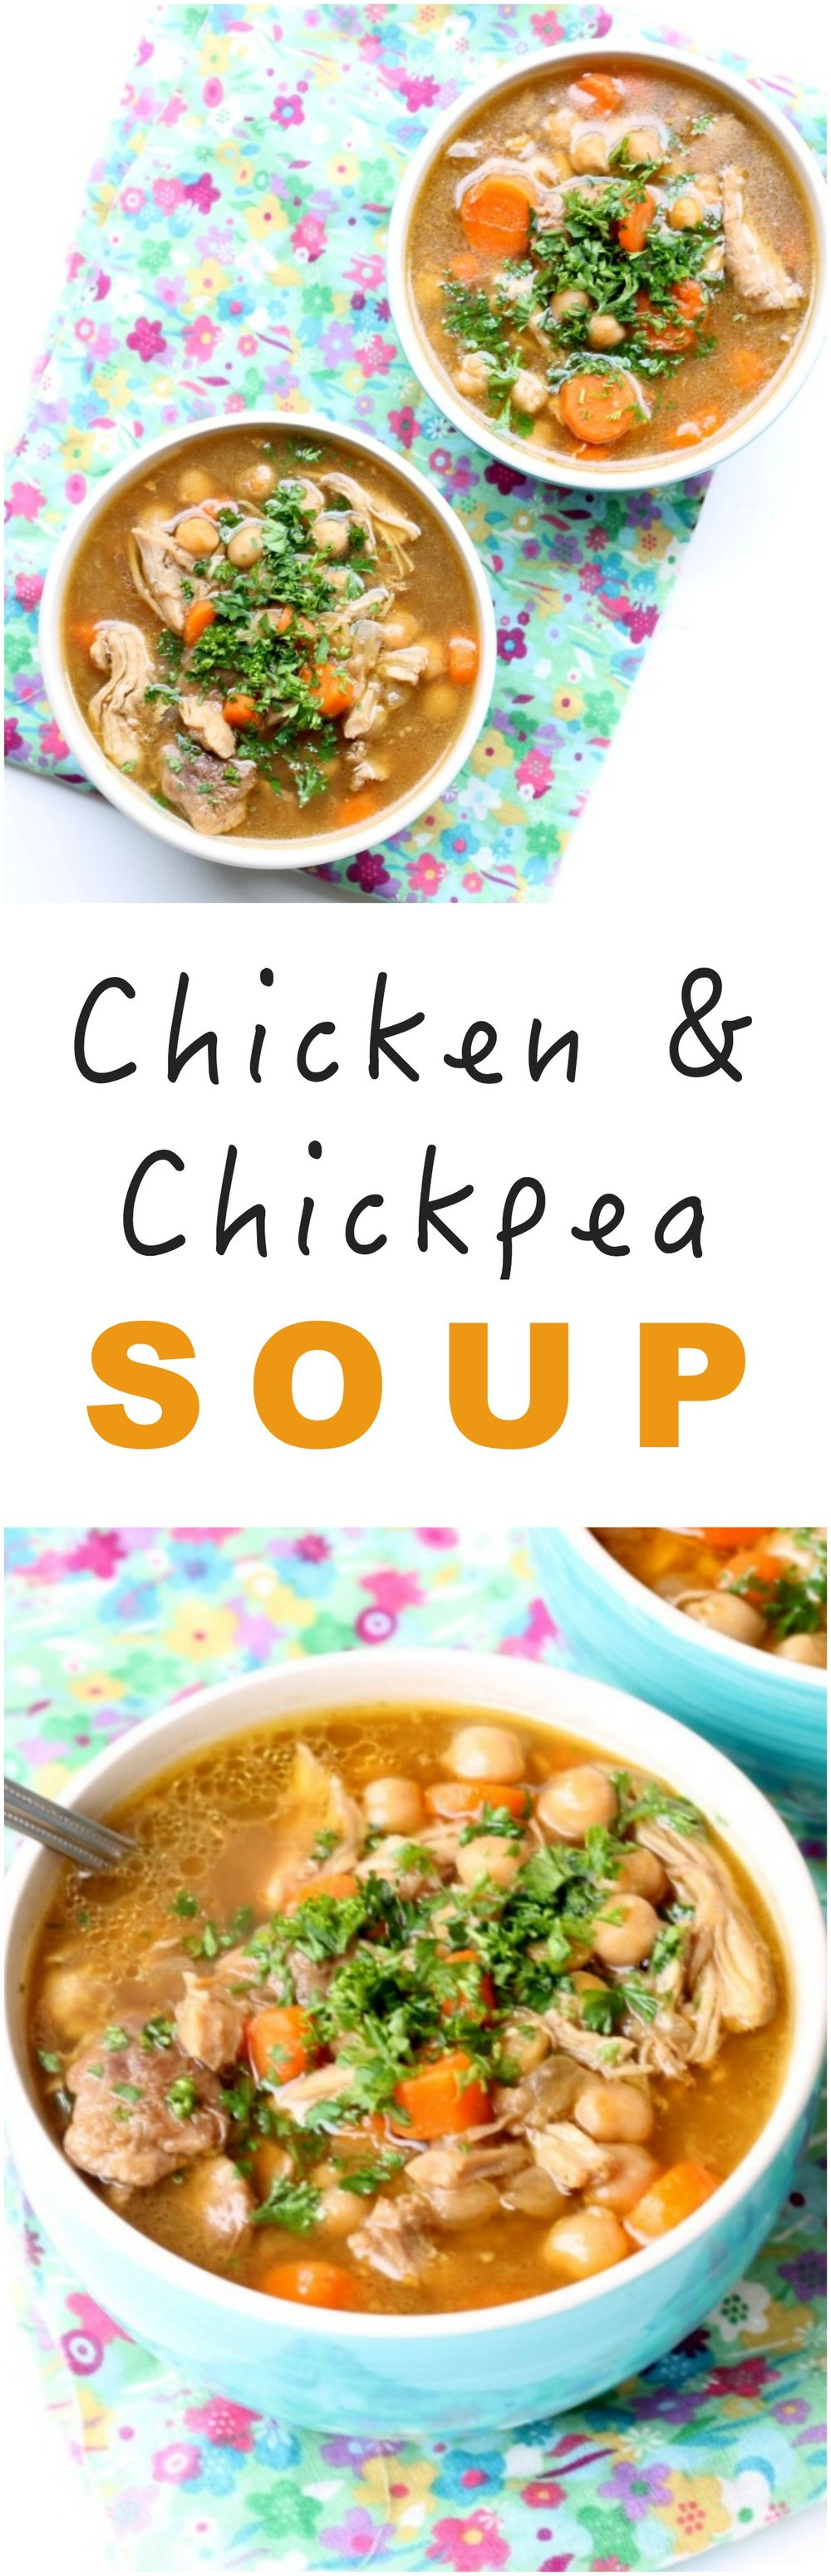 CHICKEN AND CHICKPEA SOUP.jpg